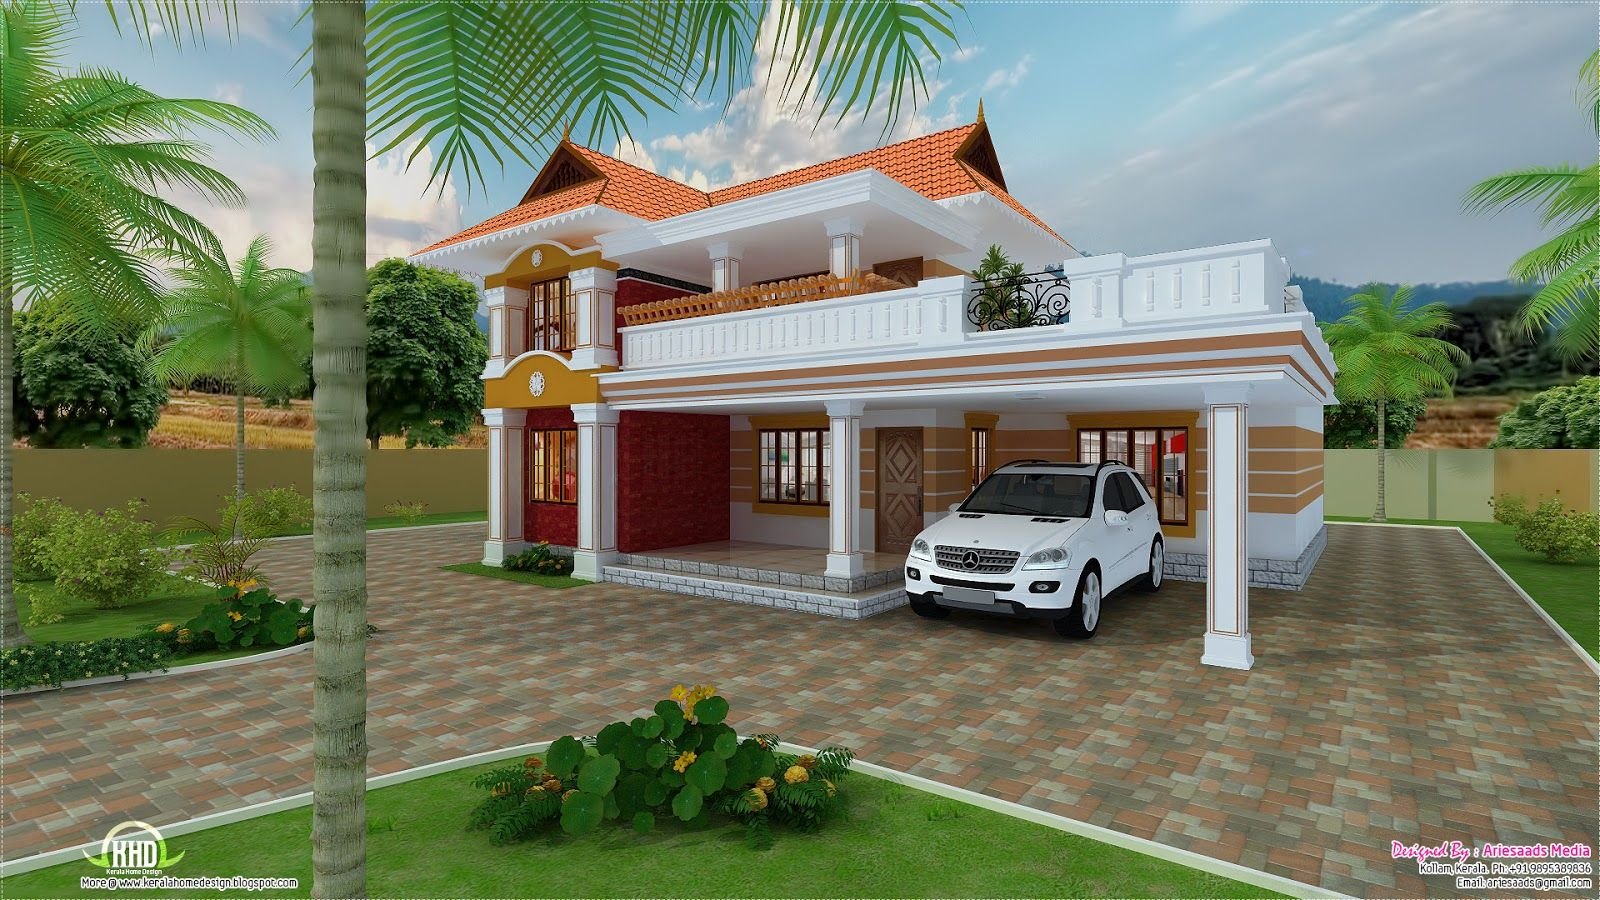 Bedroom Sq Ft Kerala Style House Kerala House Design Idea Sq Ft House  Provision Stair Future Expansion Kerala | Home Design | Pinterest | Kerala,  ...